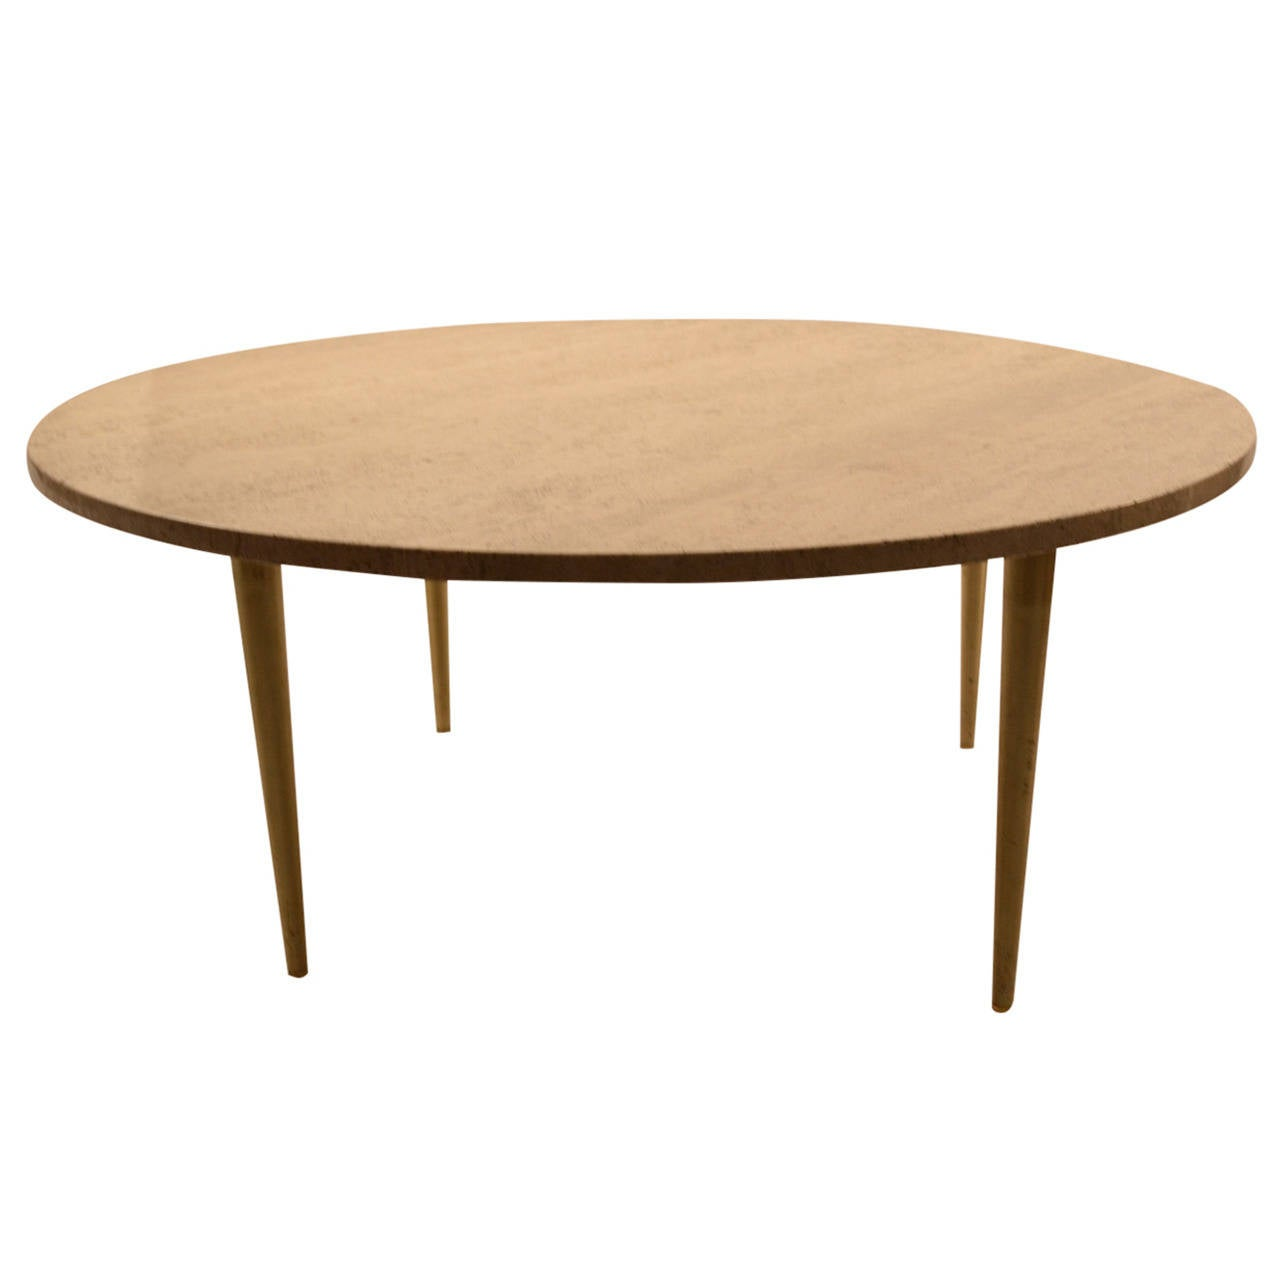 Italian round marble top coffee cocktail table for sale at 1stdibs Round marble coffee tables